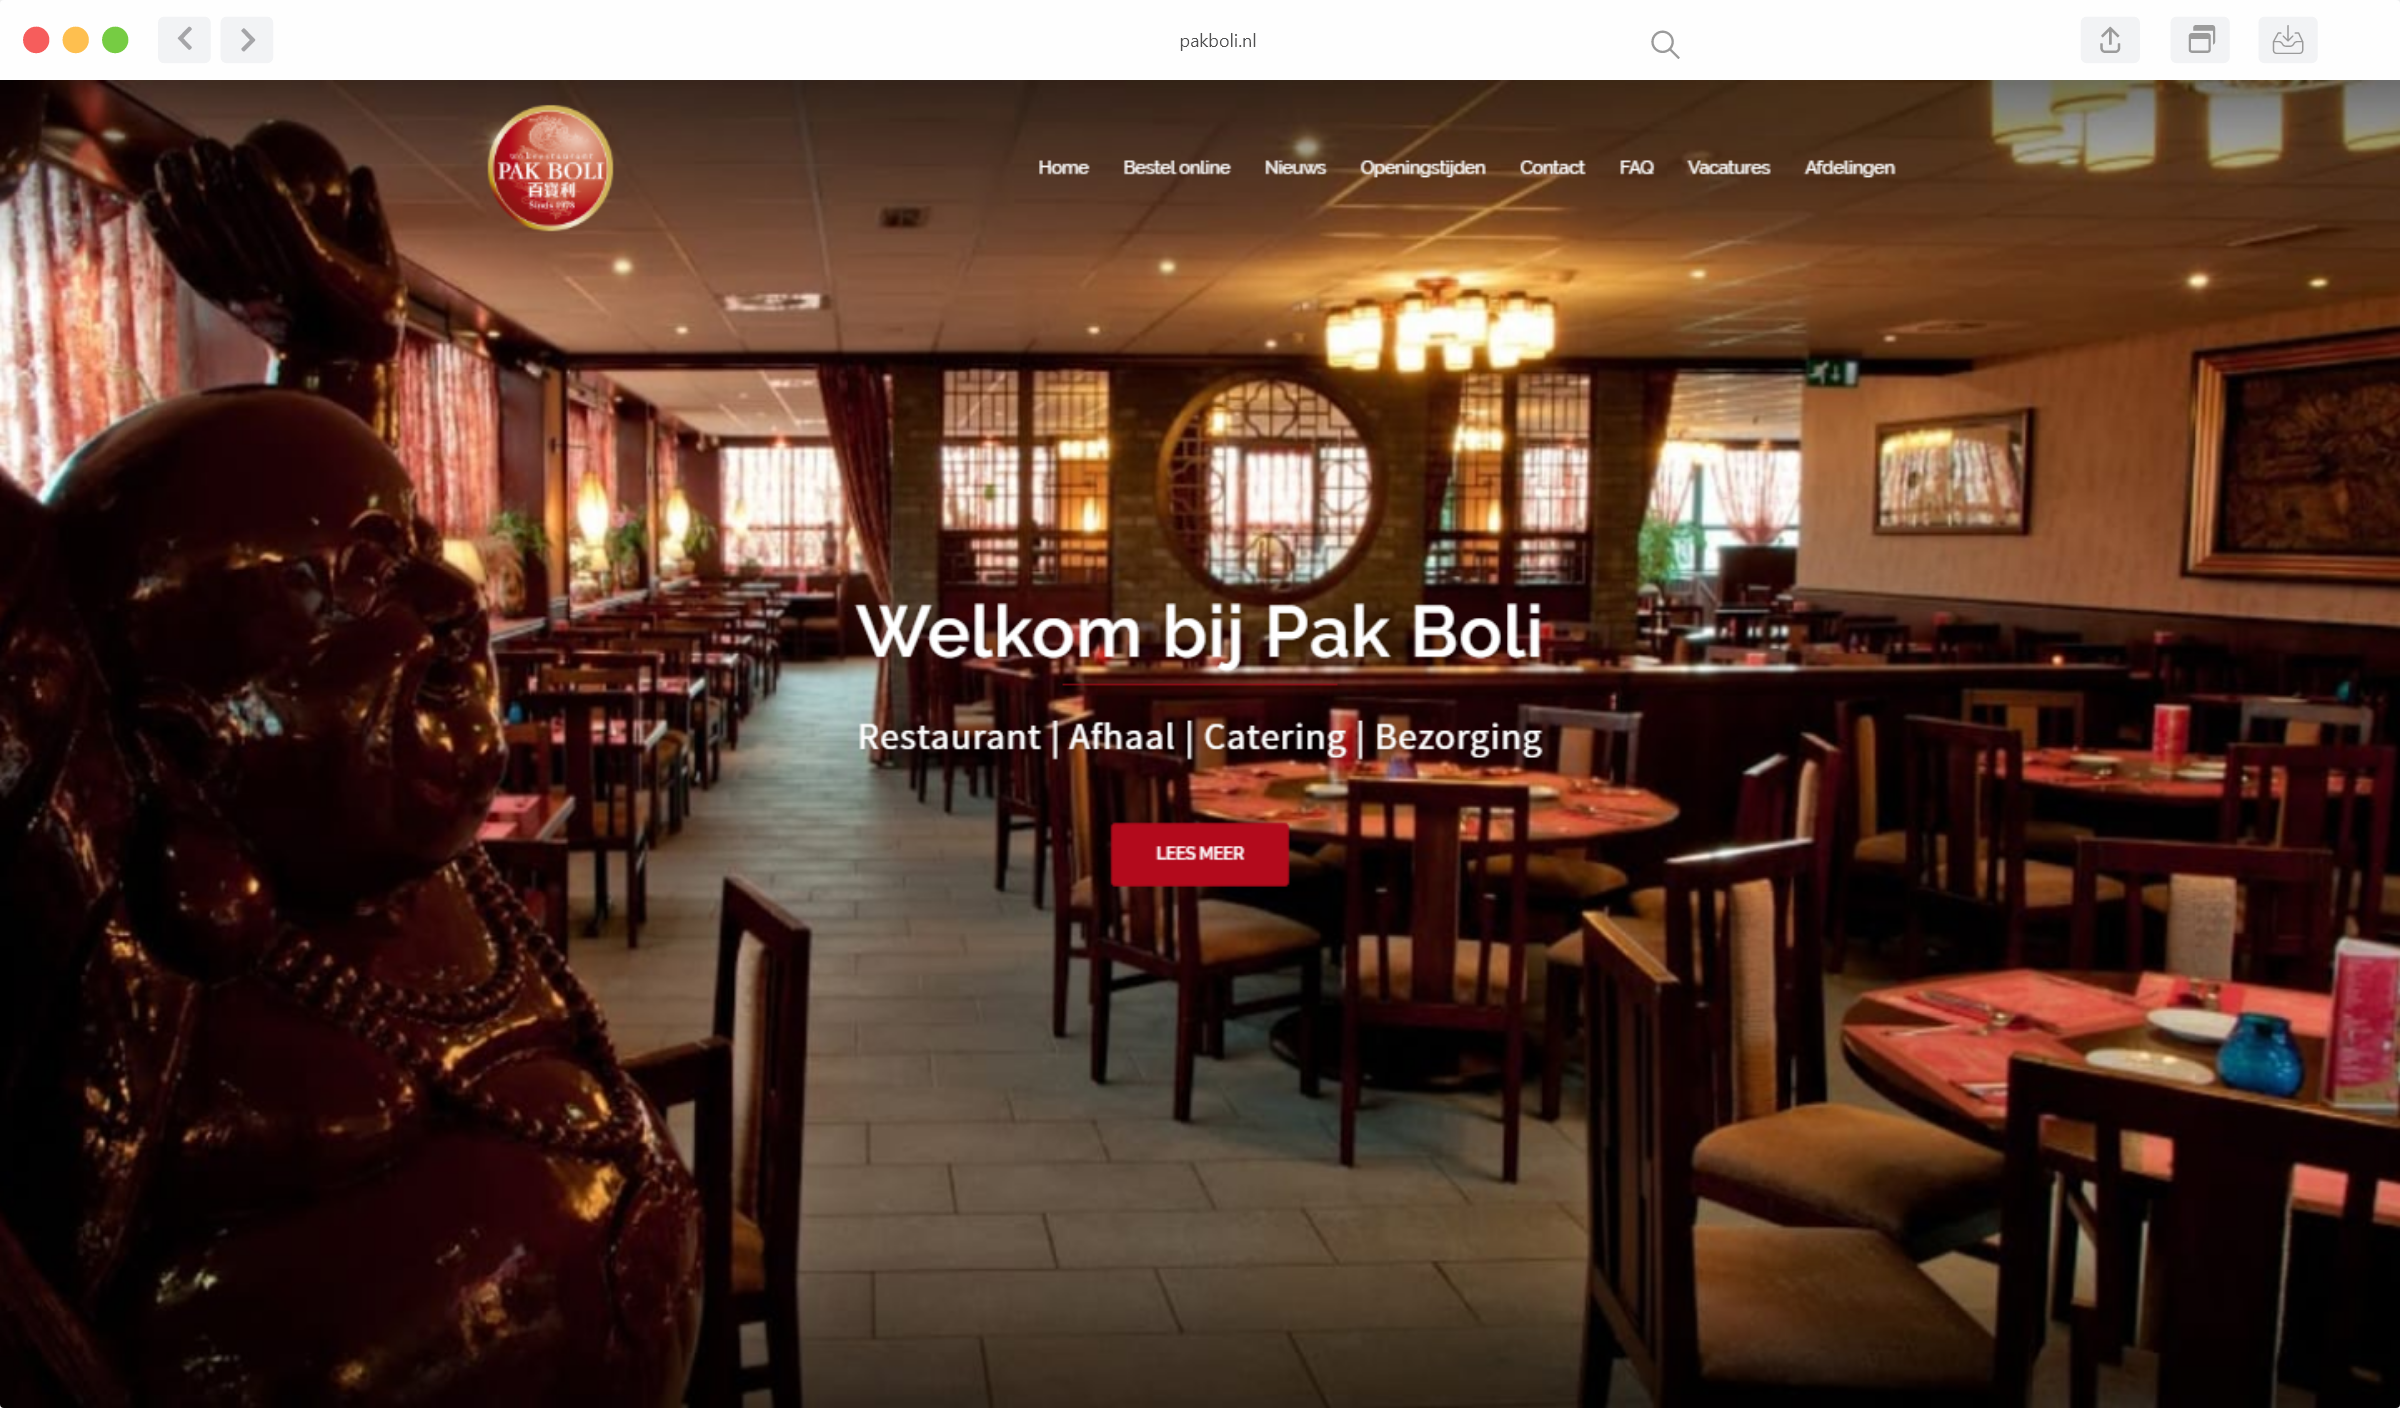 Preview van de website van Pak Boli